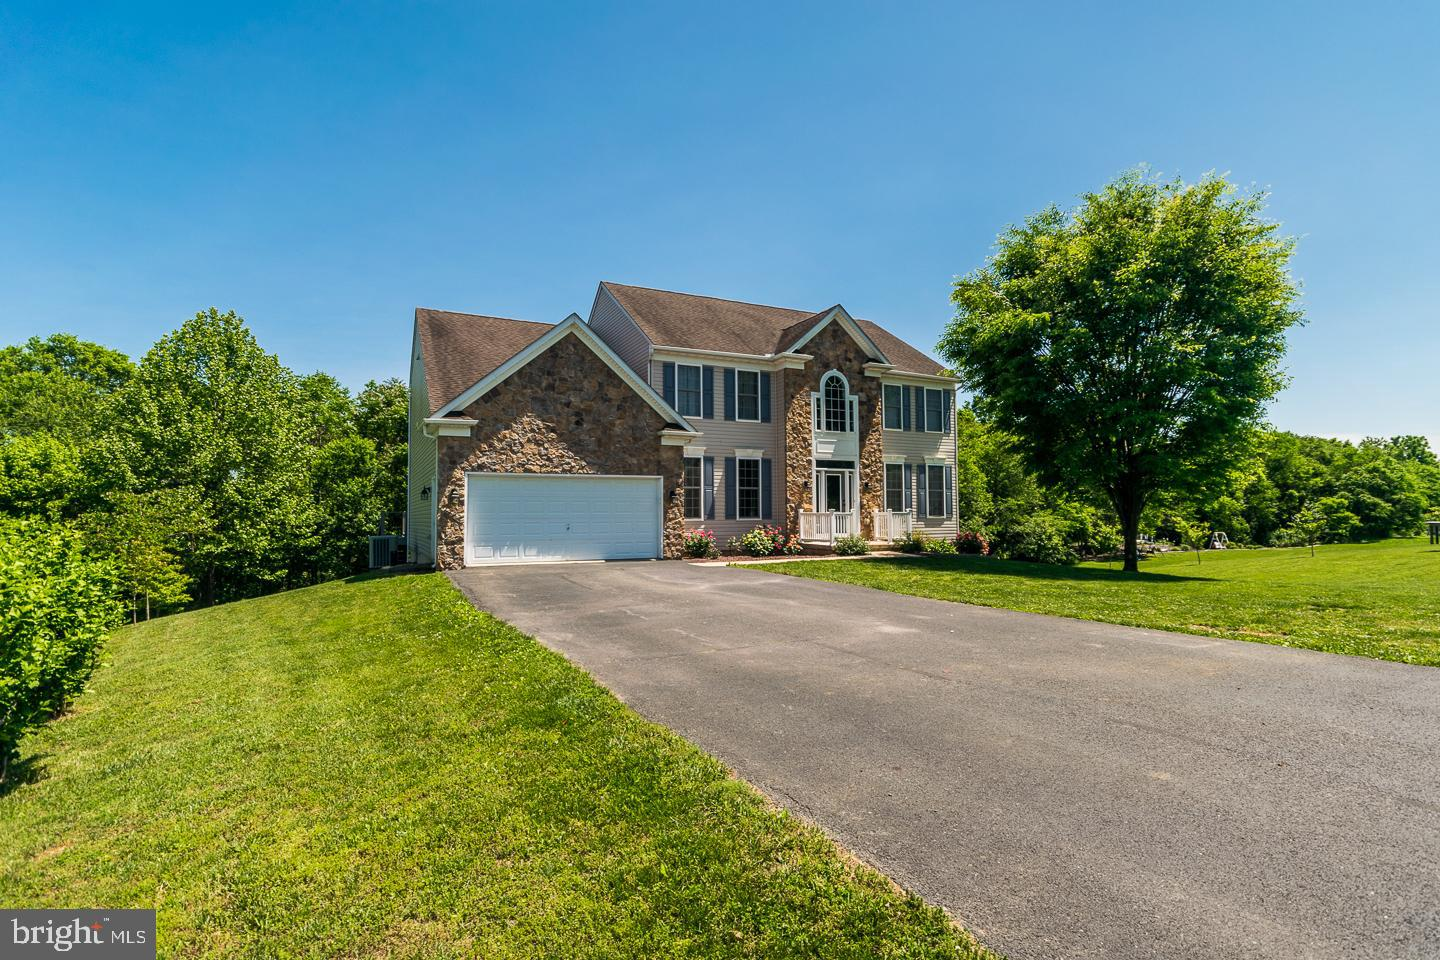 NOW ACTIVE!! Five bedrooms, 4 baths, enormous kitchen, sun room with tons of natural light! Formal l